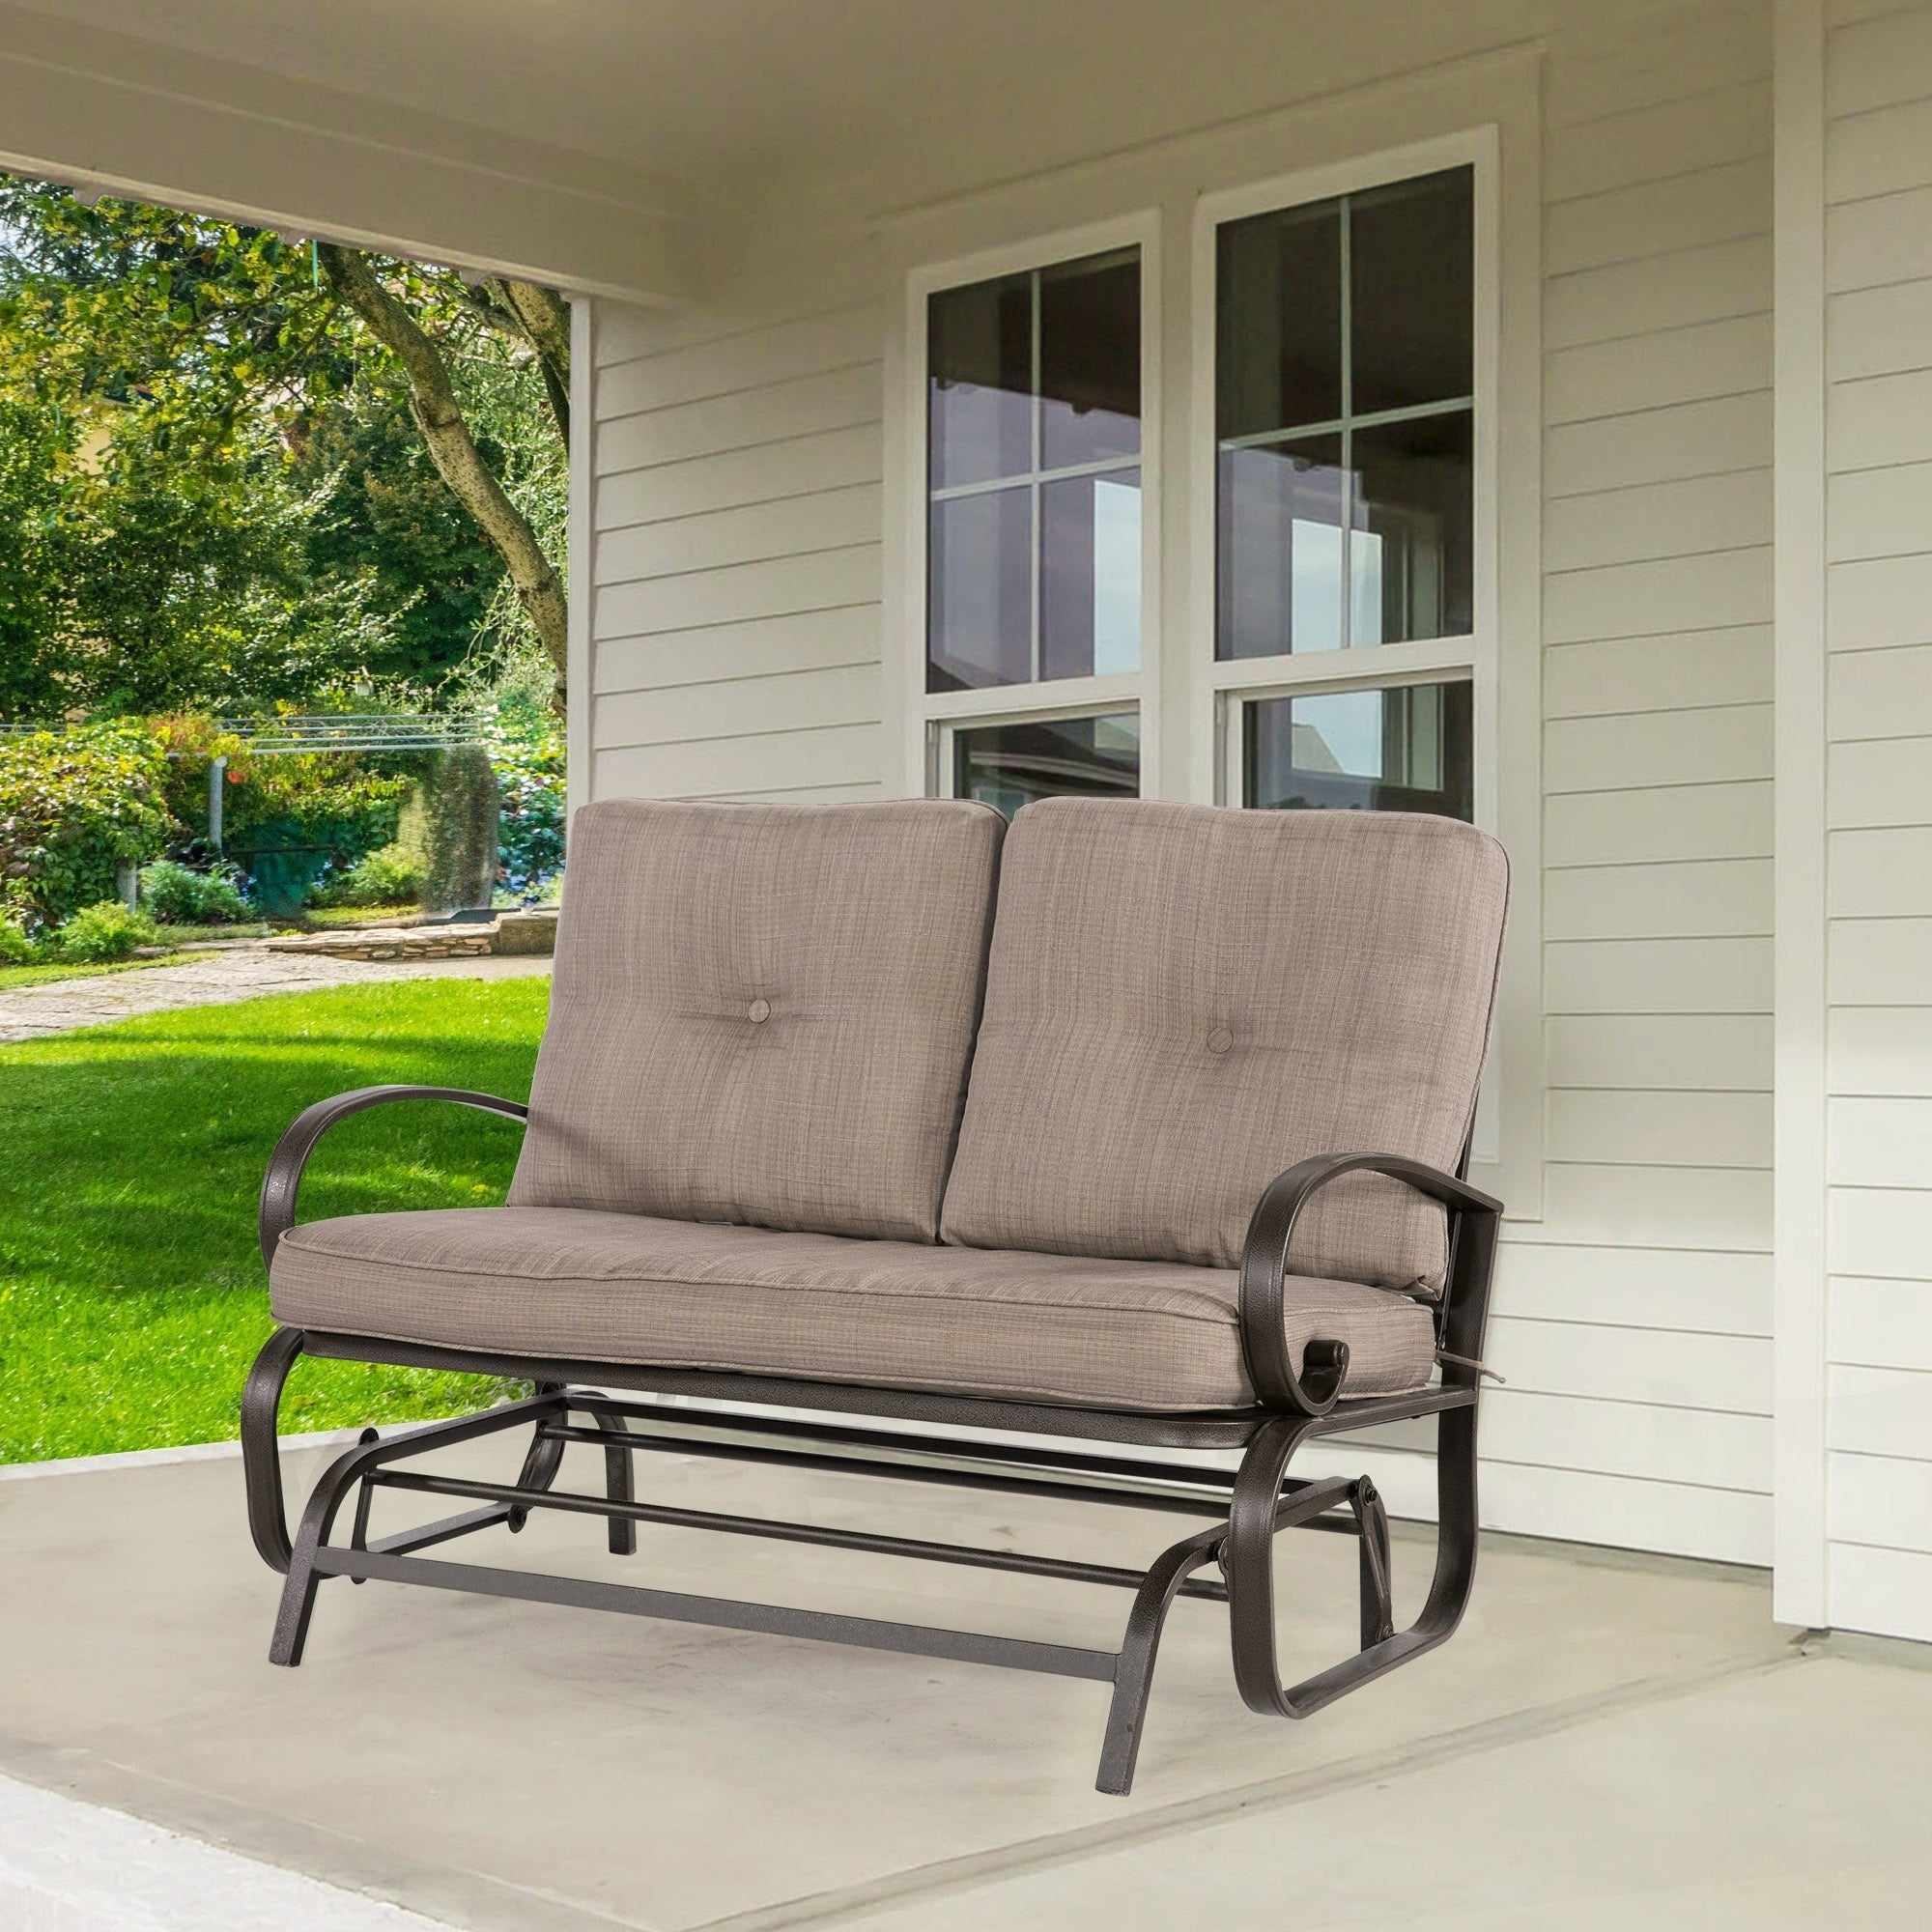 Most Popular 2 Person Loveseat Chair Patio Porch Swings With Rocker Within 2 Person Loveseat Cushioned Rocking Bench Furniture Patio Swing Rocker Lounge Glider Chair Outdoor Patio, Gradient Brown (Gallery 13 of 25)